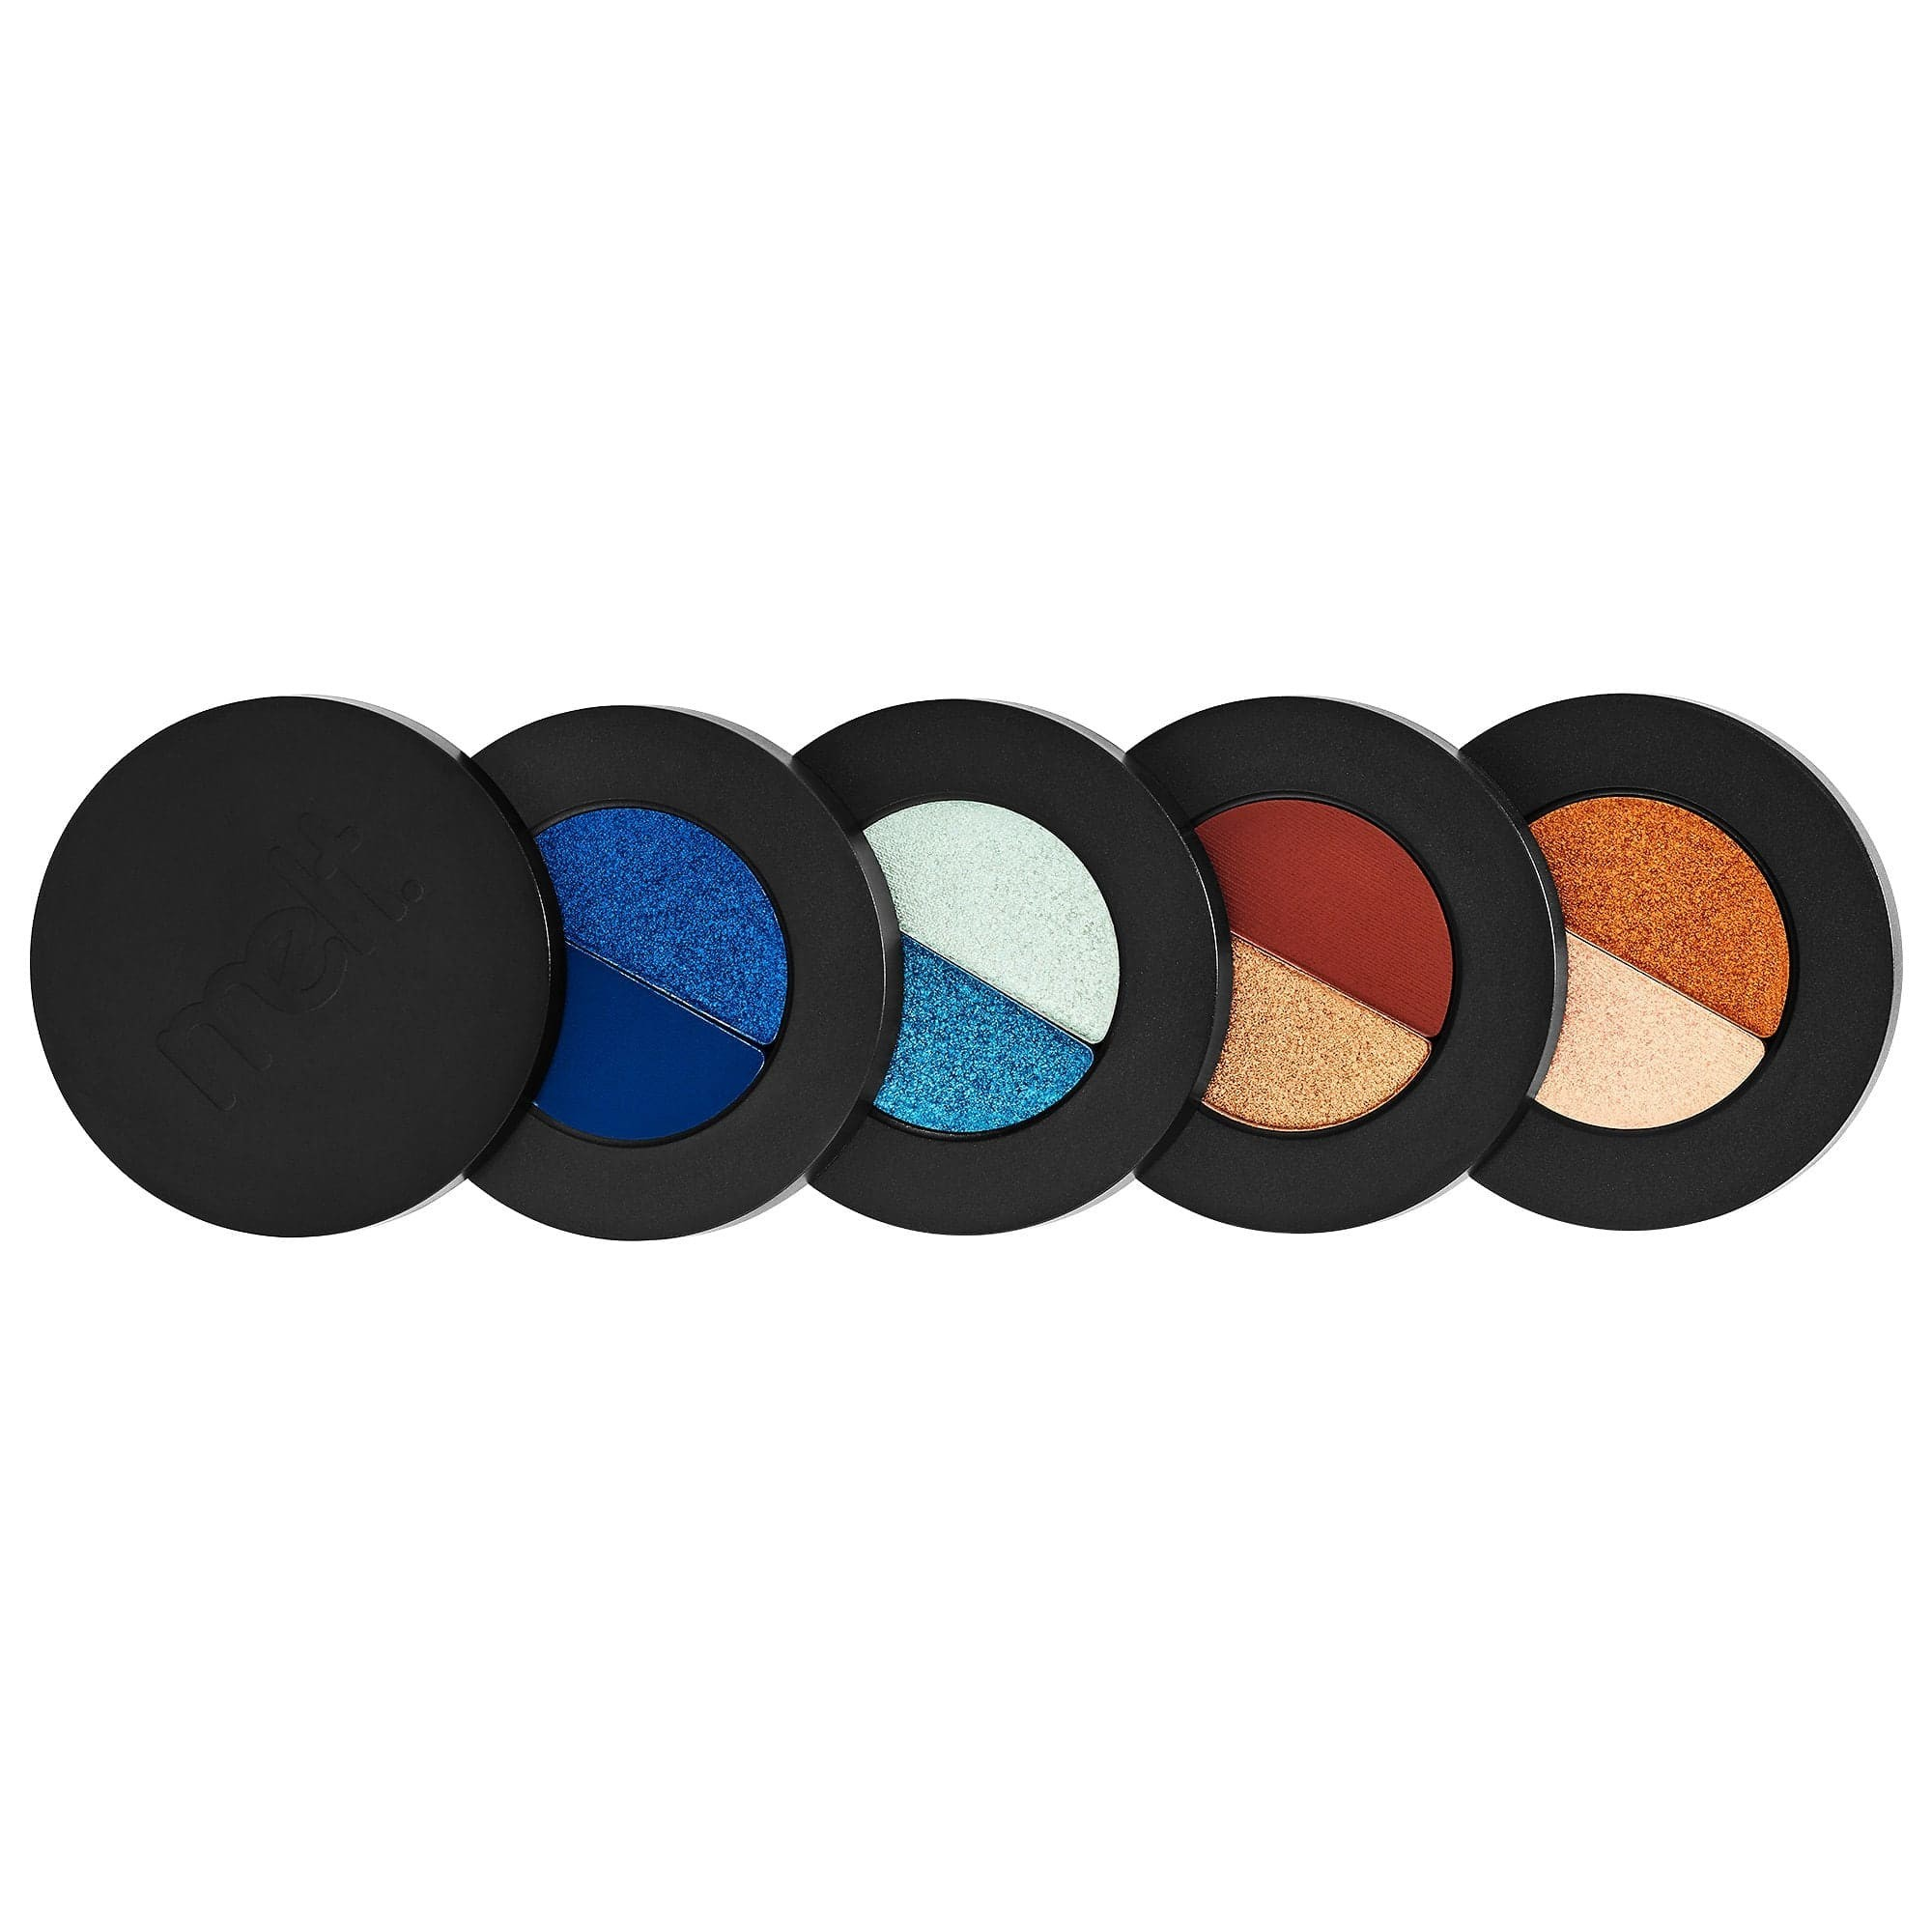 Melt Cosmetics Blueprint Eyeshadow Stack